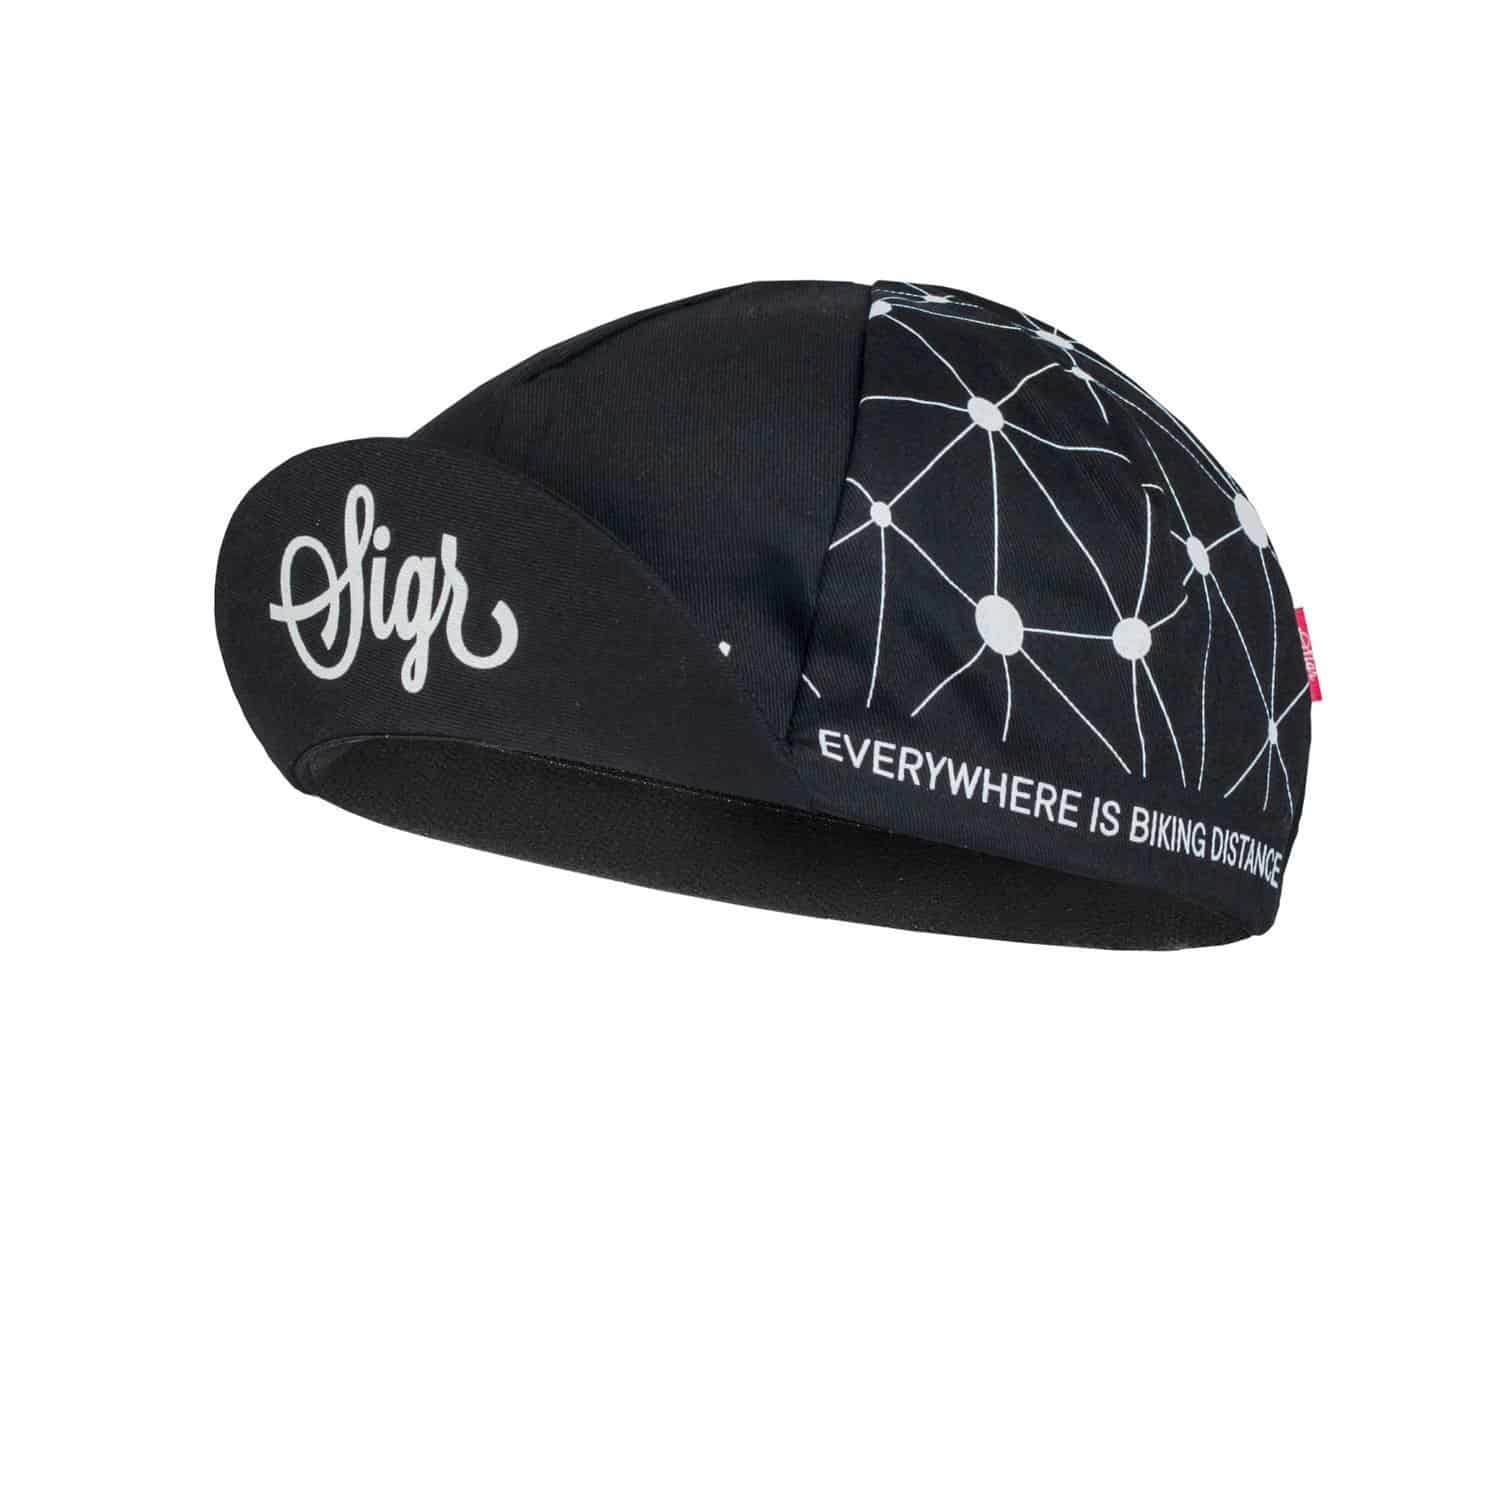 SIGR 'Sidensvans' Cycling Cap Black